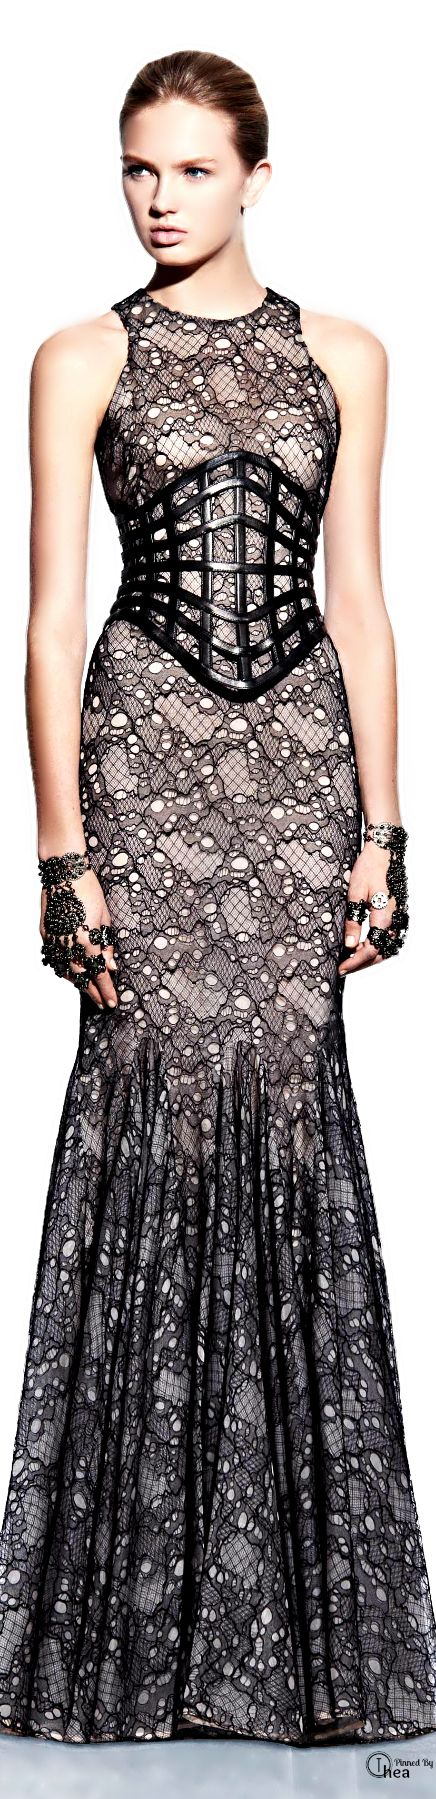 Alexander McQueen ● Evening Gown   The House of Beccaria